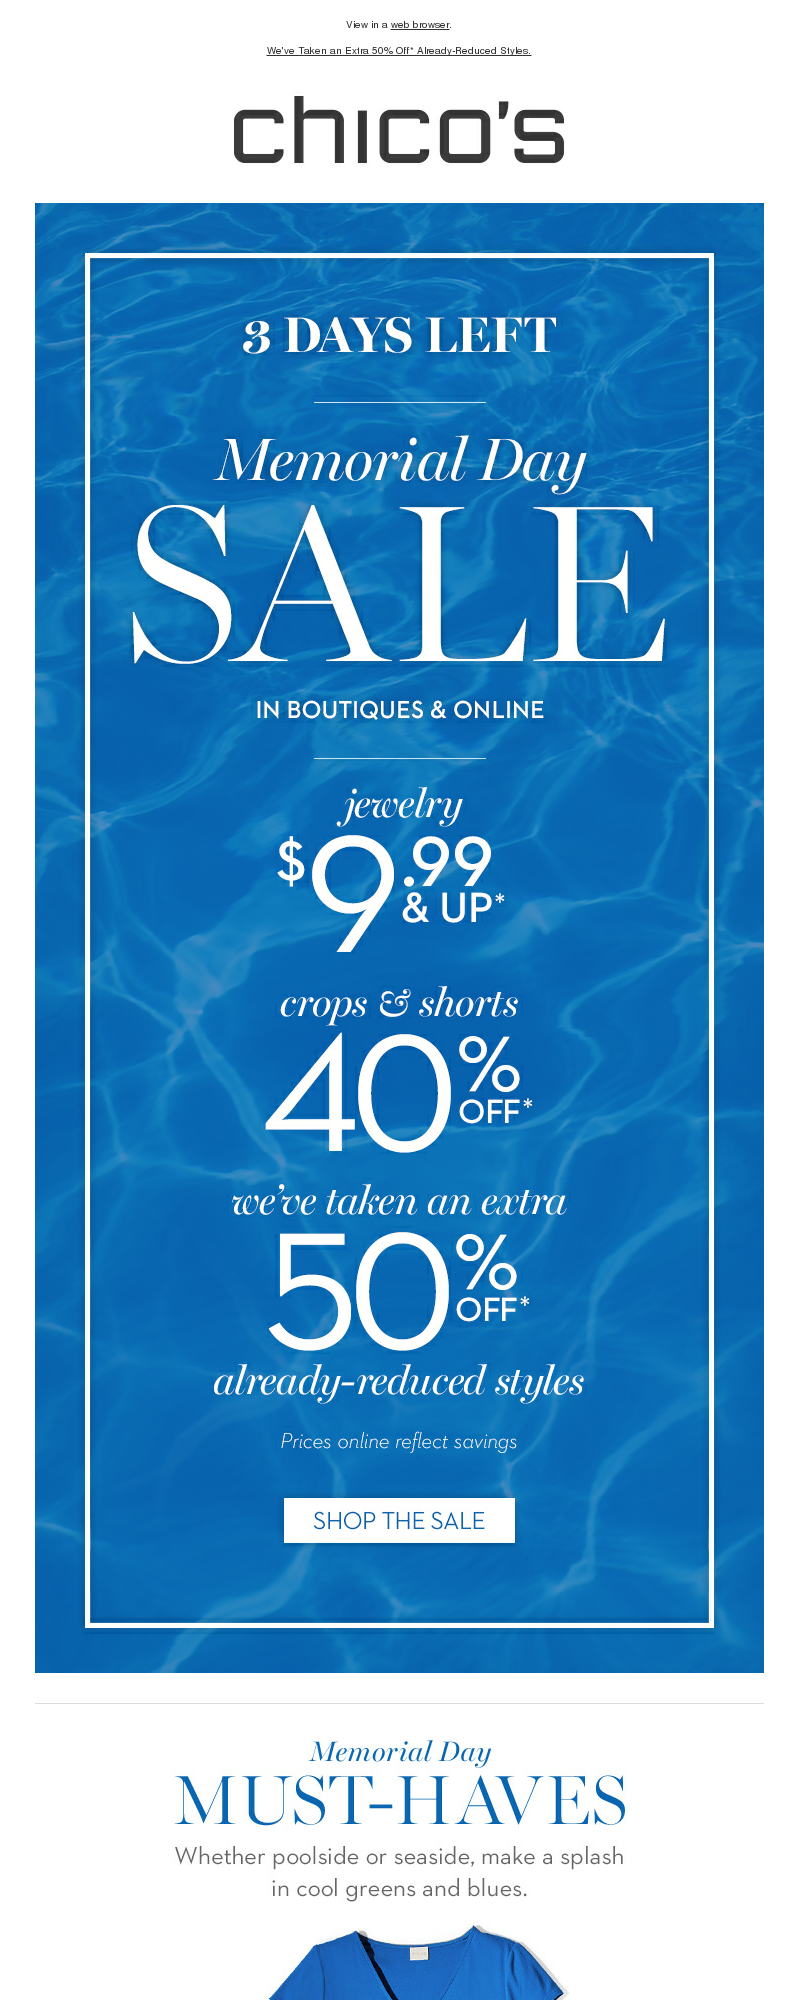 View in a web browser. We've Taken an Extra 50% Off* Already-Reduced Styles